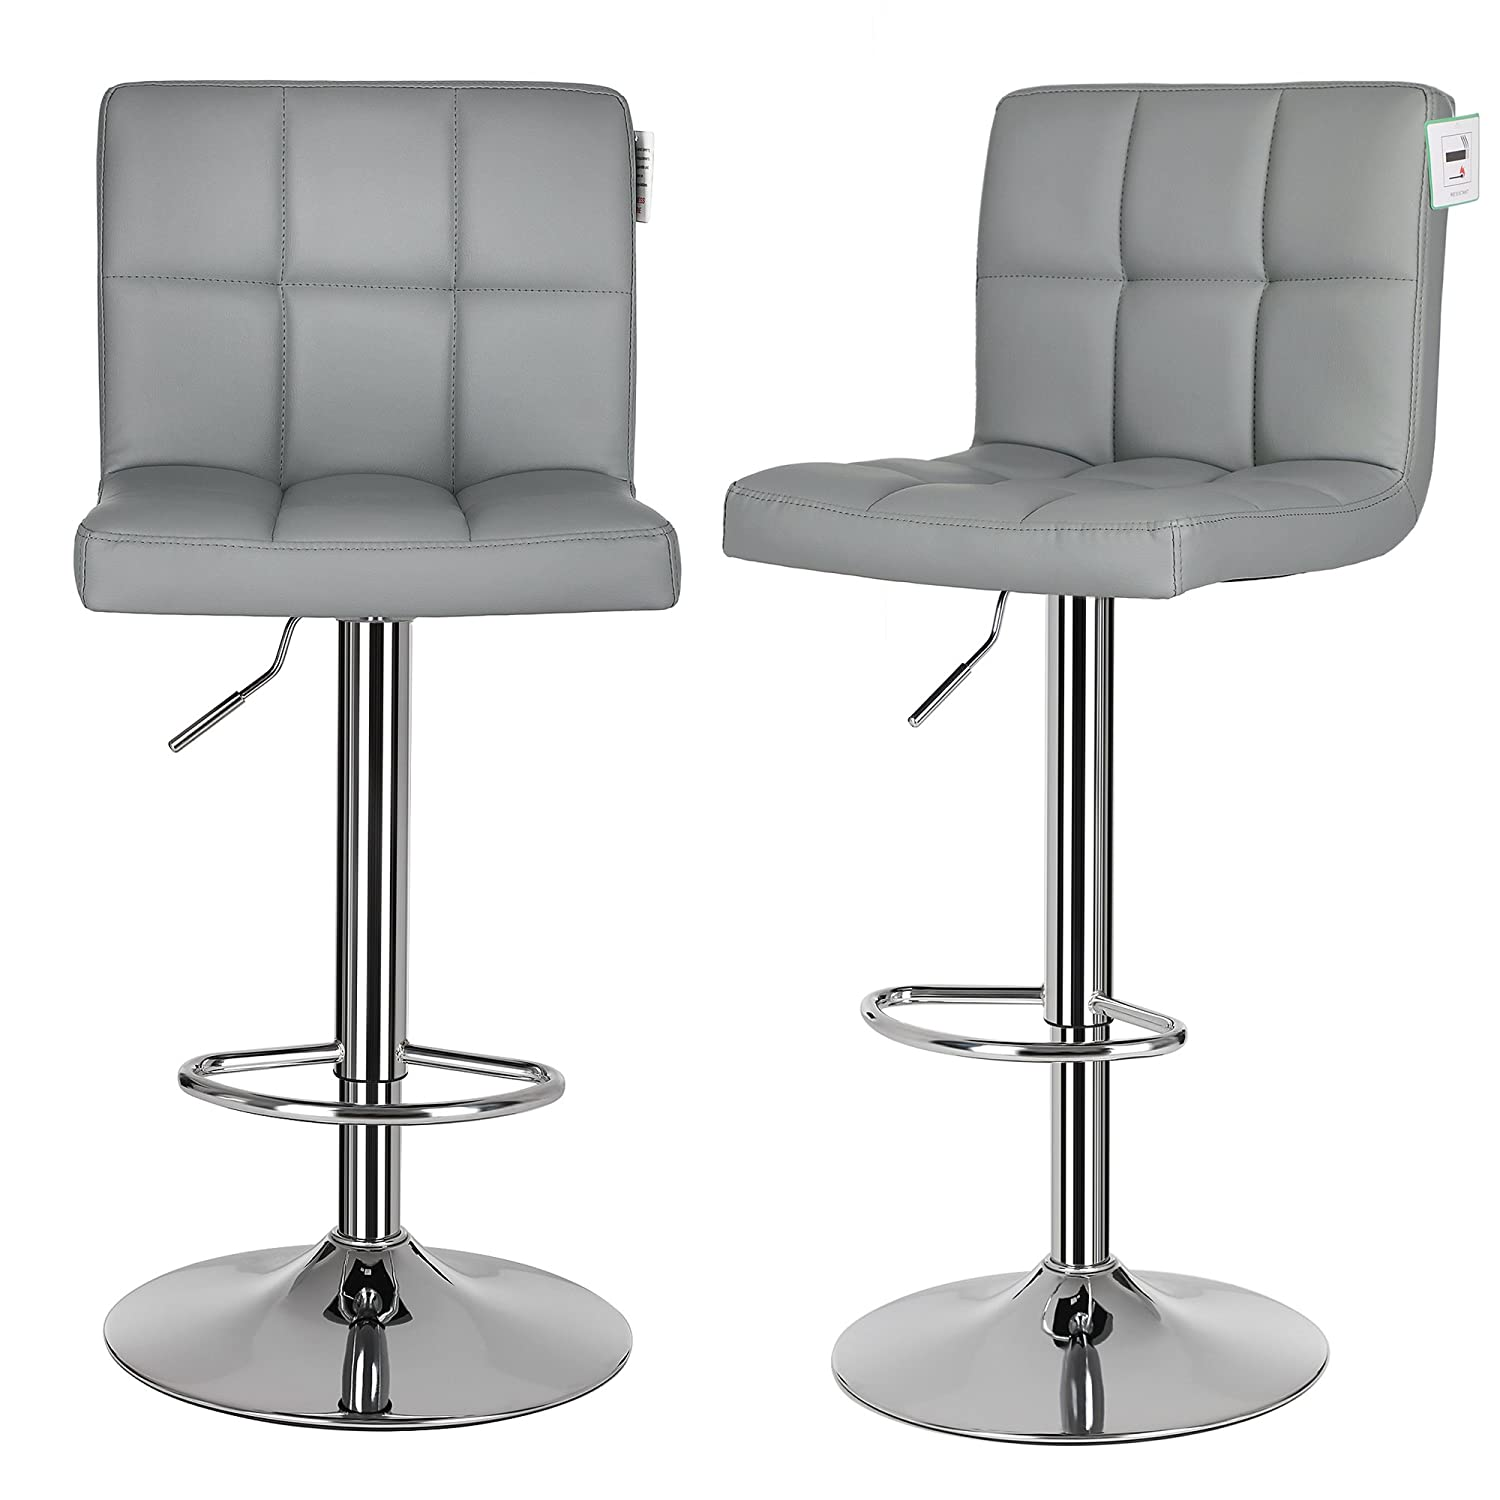 SONGMICS 2 X Bar Stools Chairs With Large Seats Breakfast Stools For Kitchen  Island Grey LJB64GUK: Amazon.co.uk: Kitchen U0026 Home